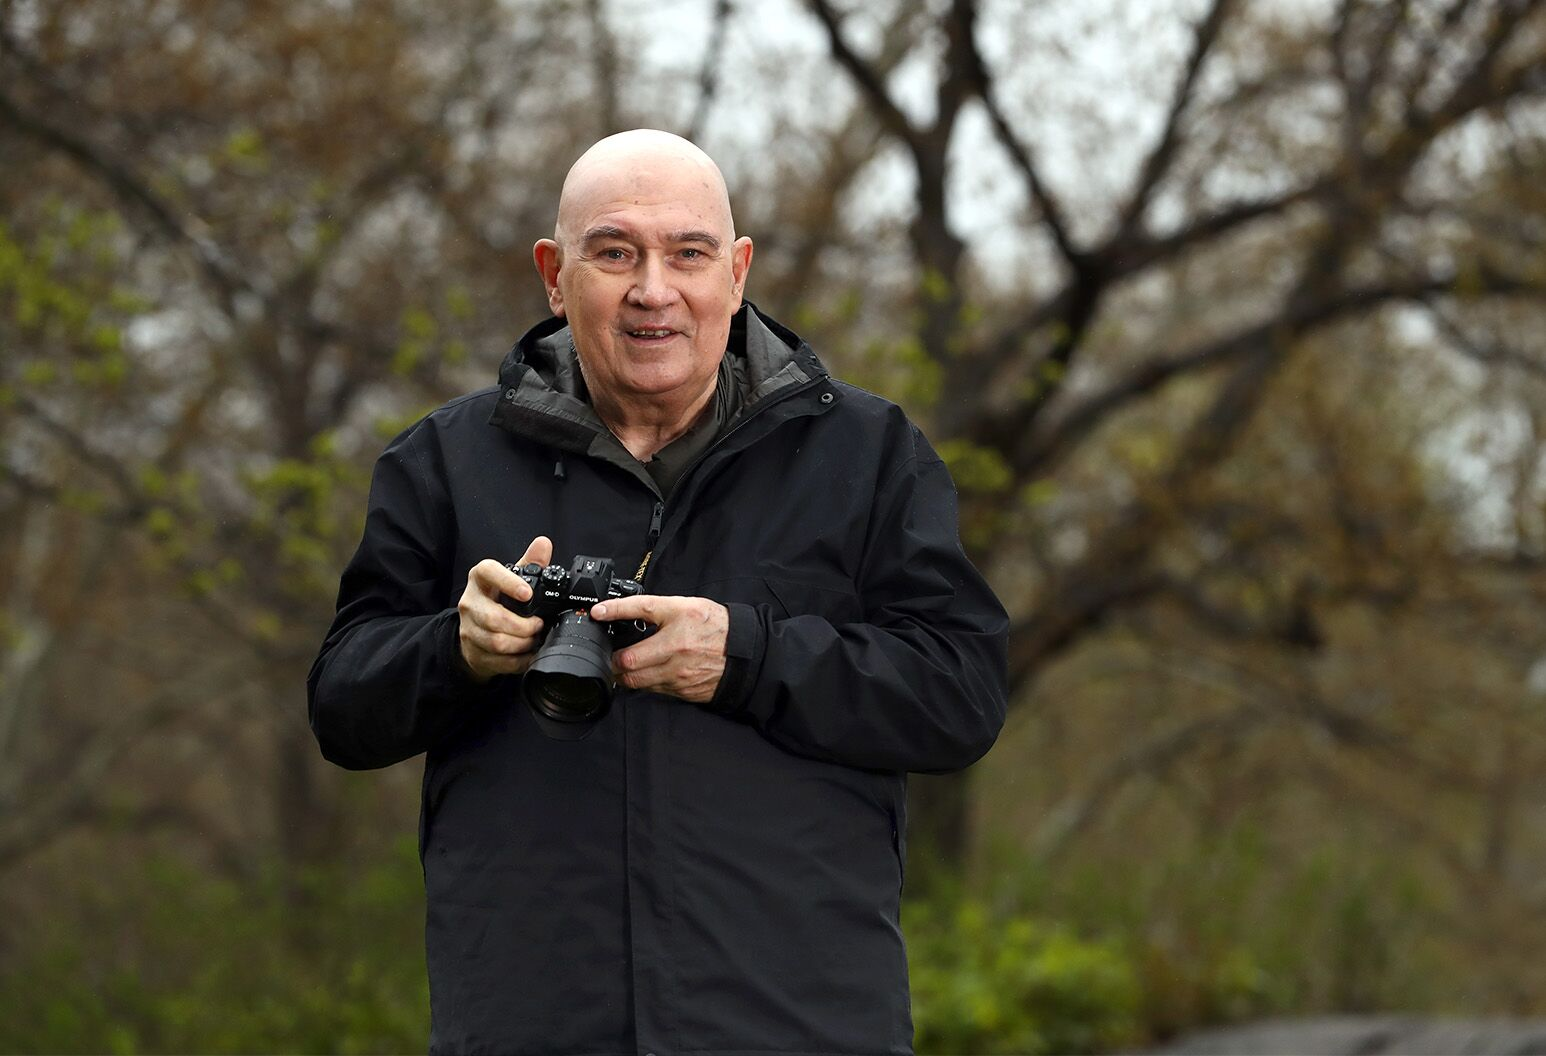 A man poses in the park with his professional camera.